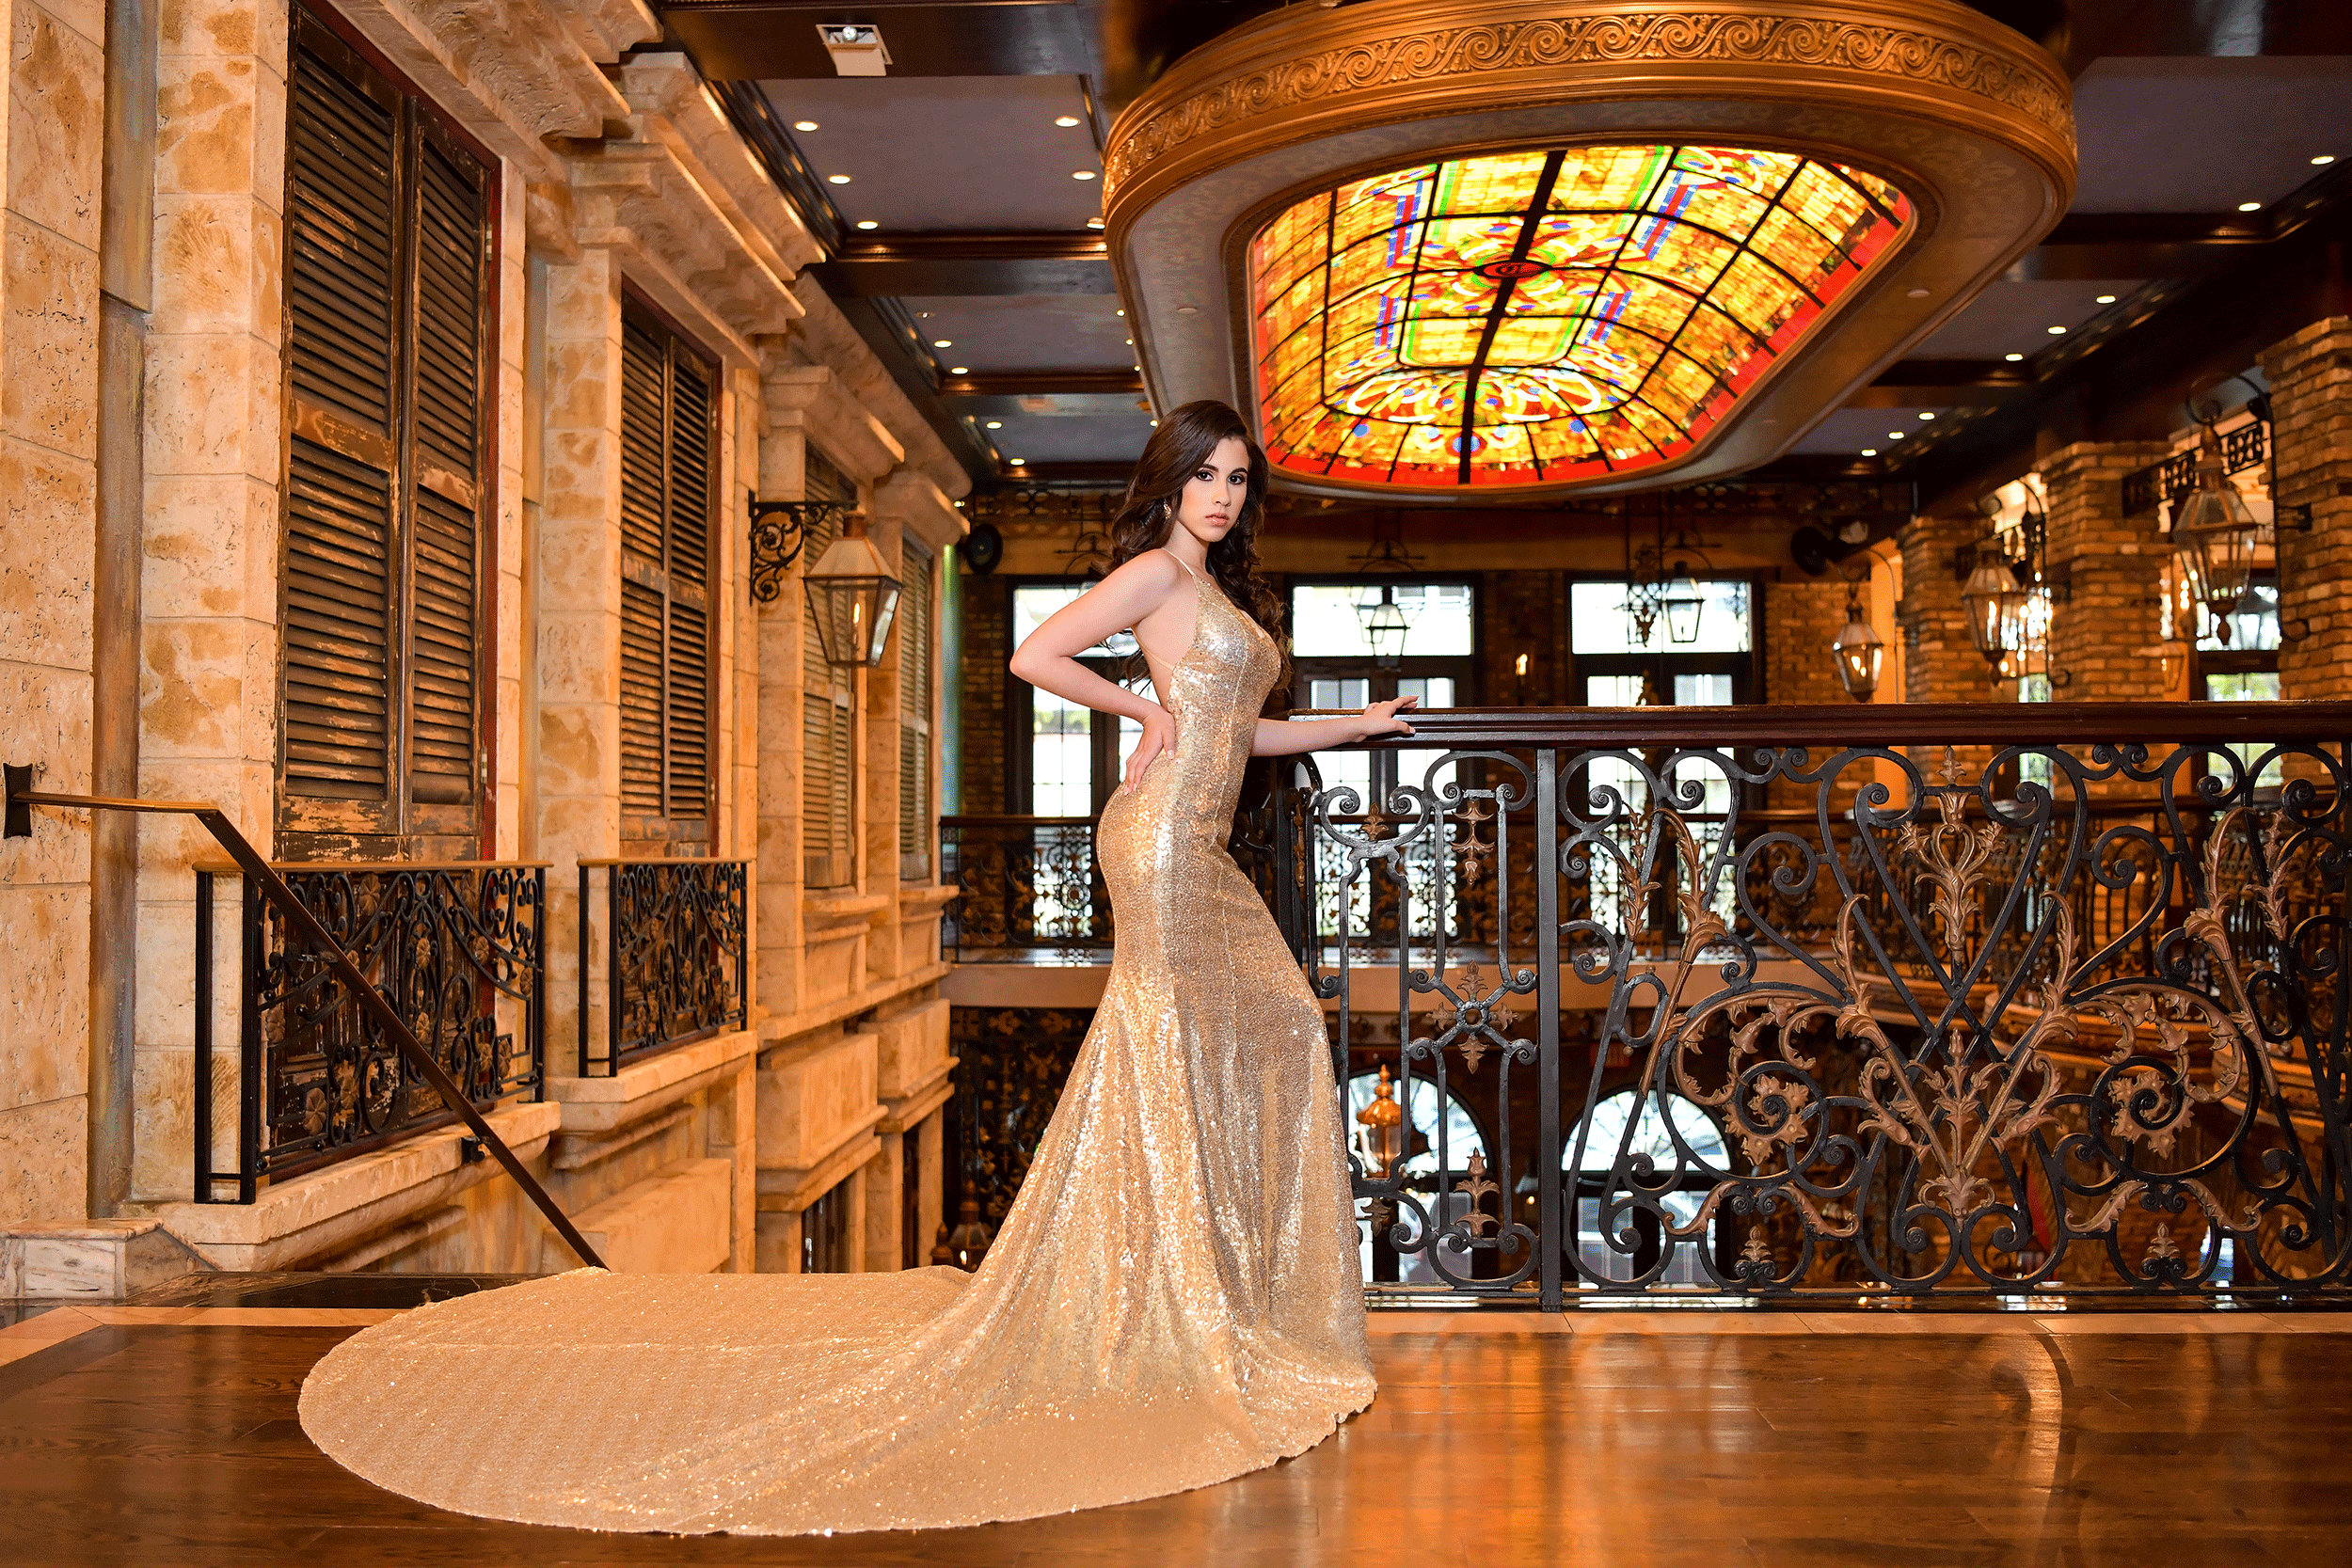 Quinceañera at the Cruz building in a gold dress Photo by Quinceanera Photo Studio.